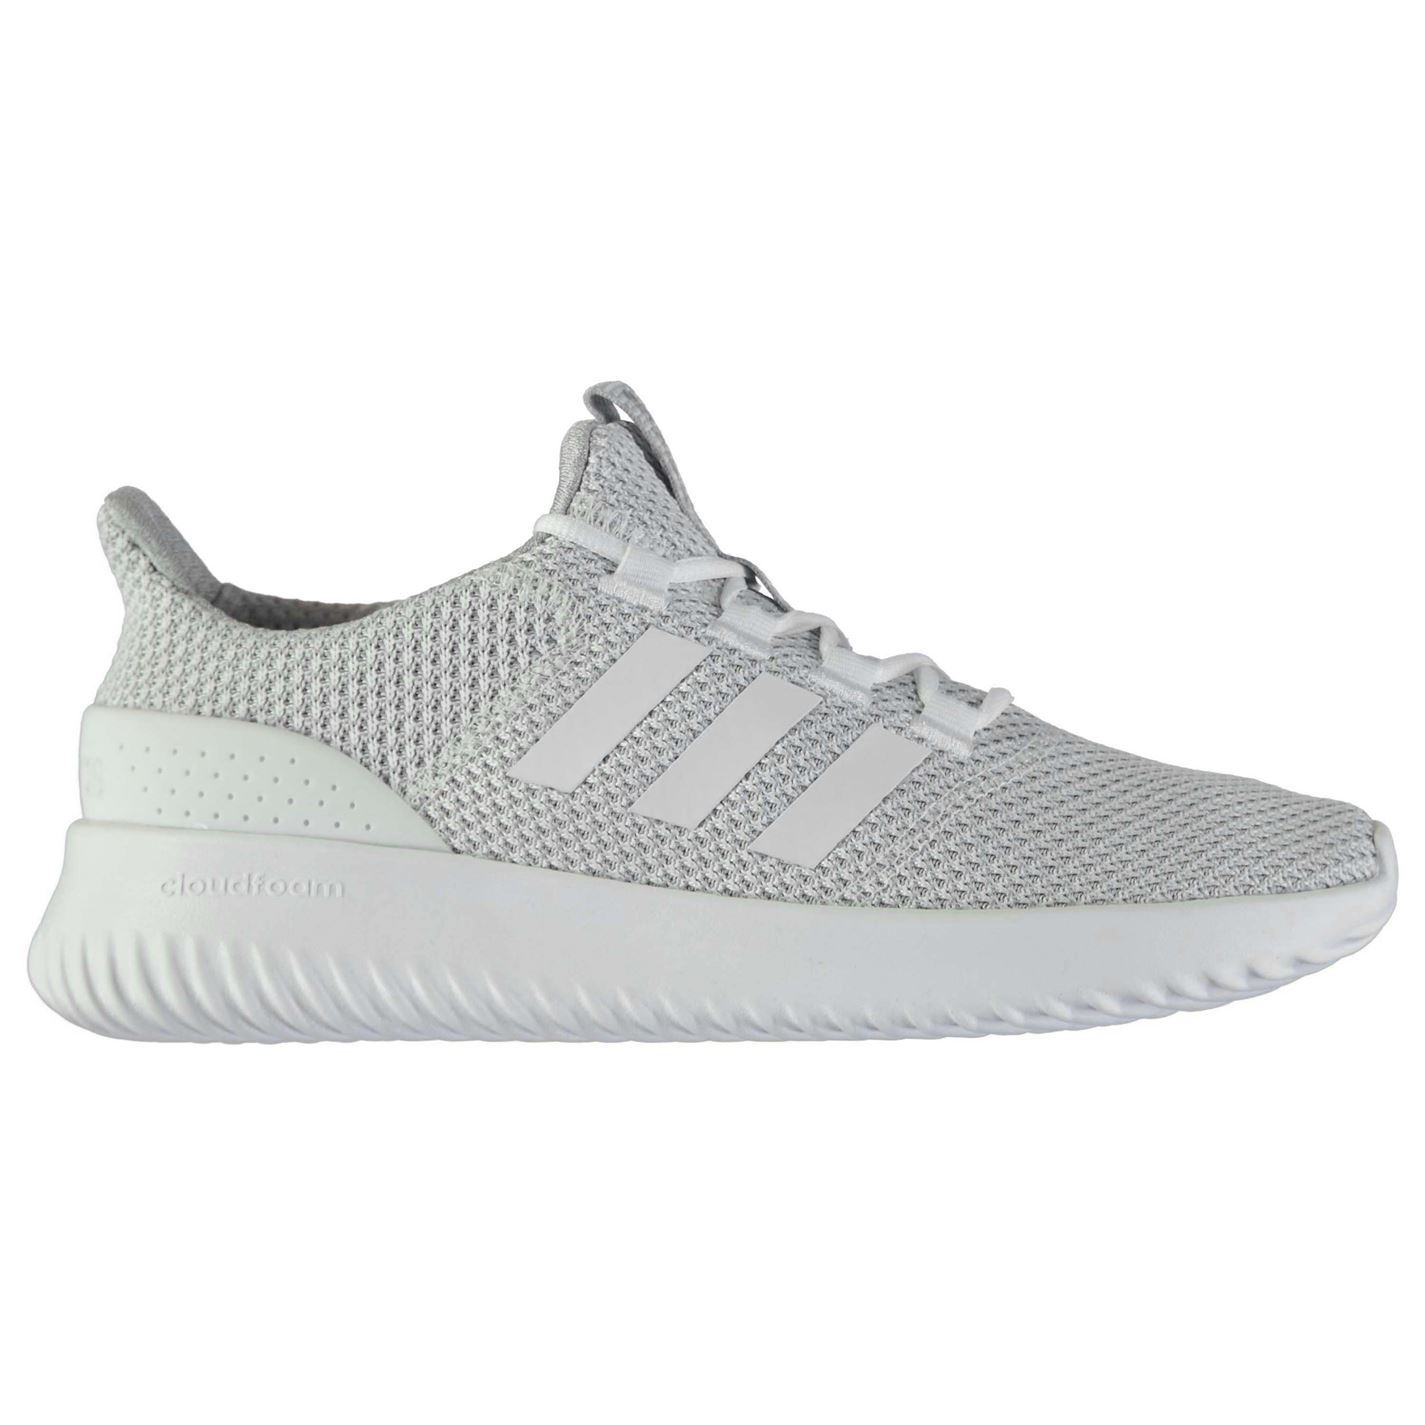 4dd822f0687 ... adidas Cloudfoam Ultimate Trainers Mens White Athletic Sneakers Shoes  ...